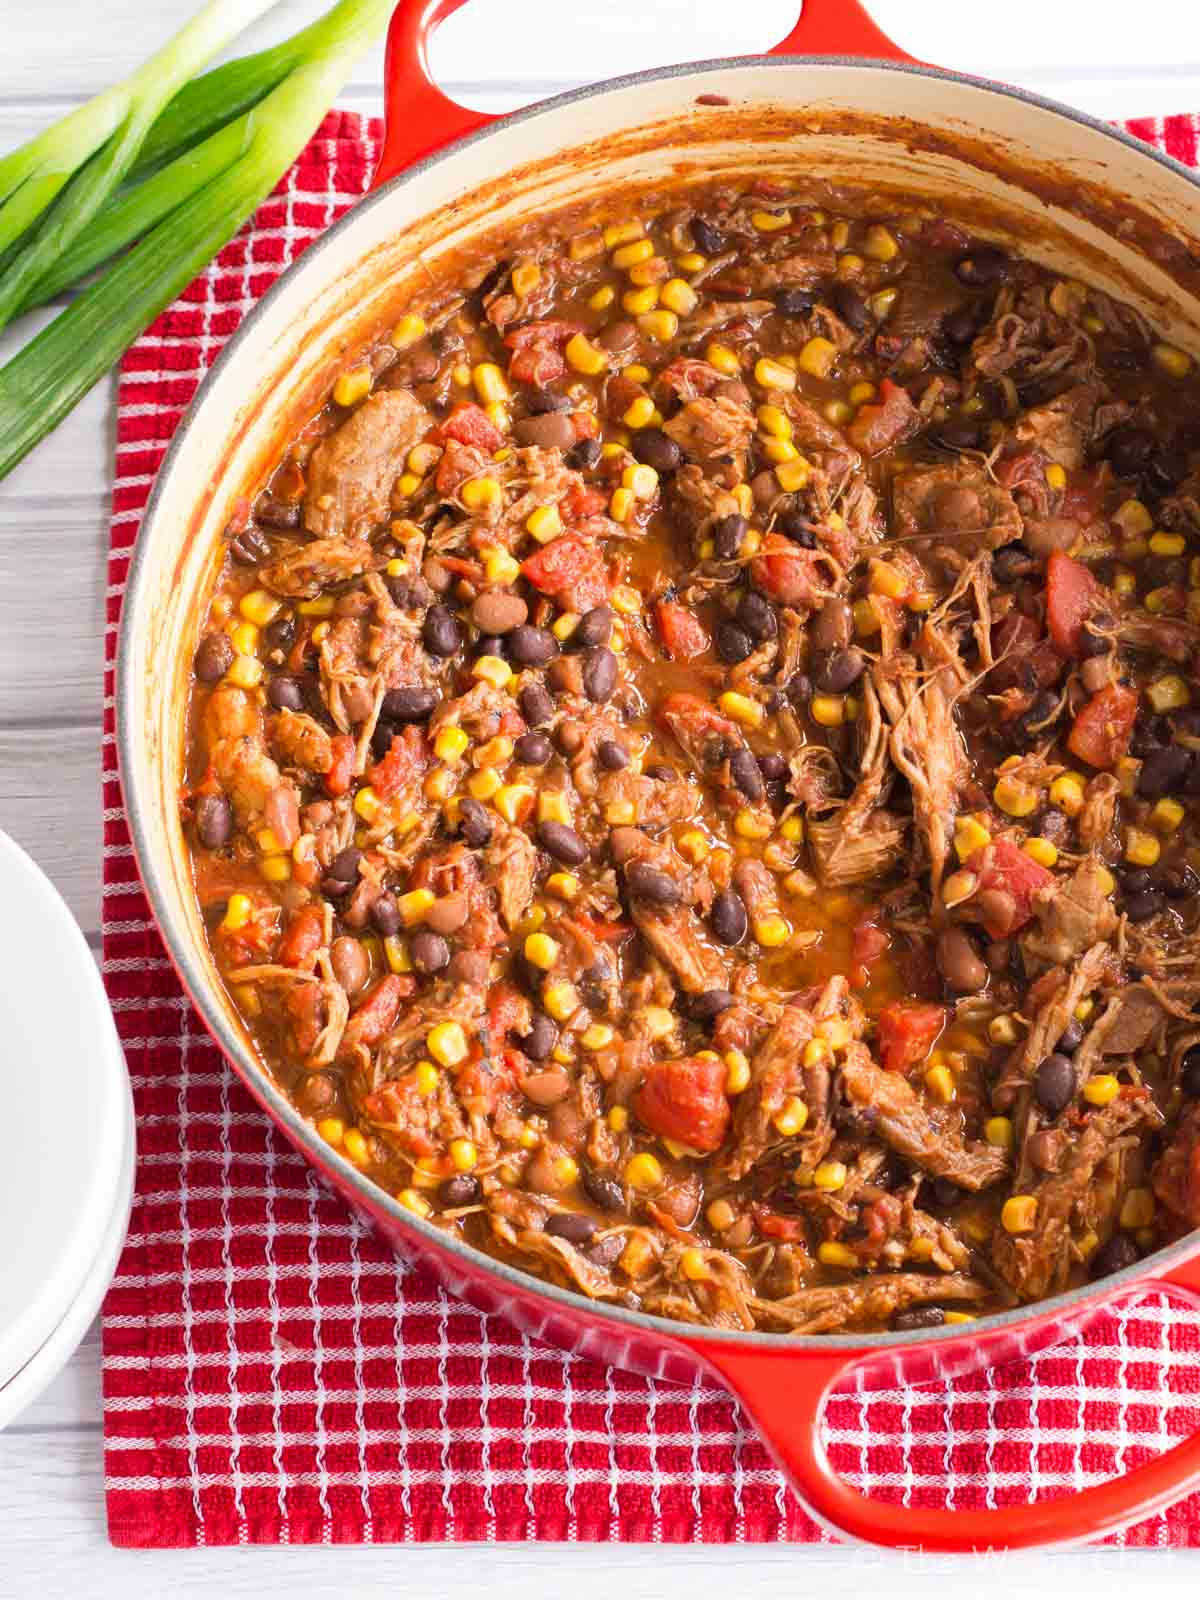 Got leftover pork roast? Put it to good use in this quick and easy chili recipe!